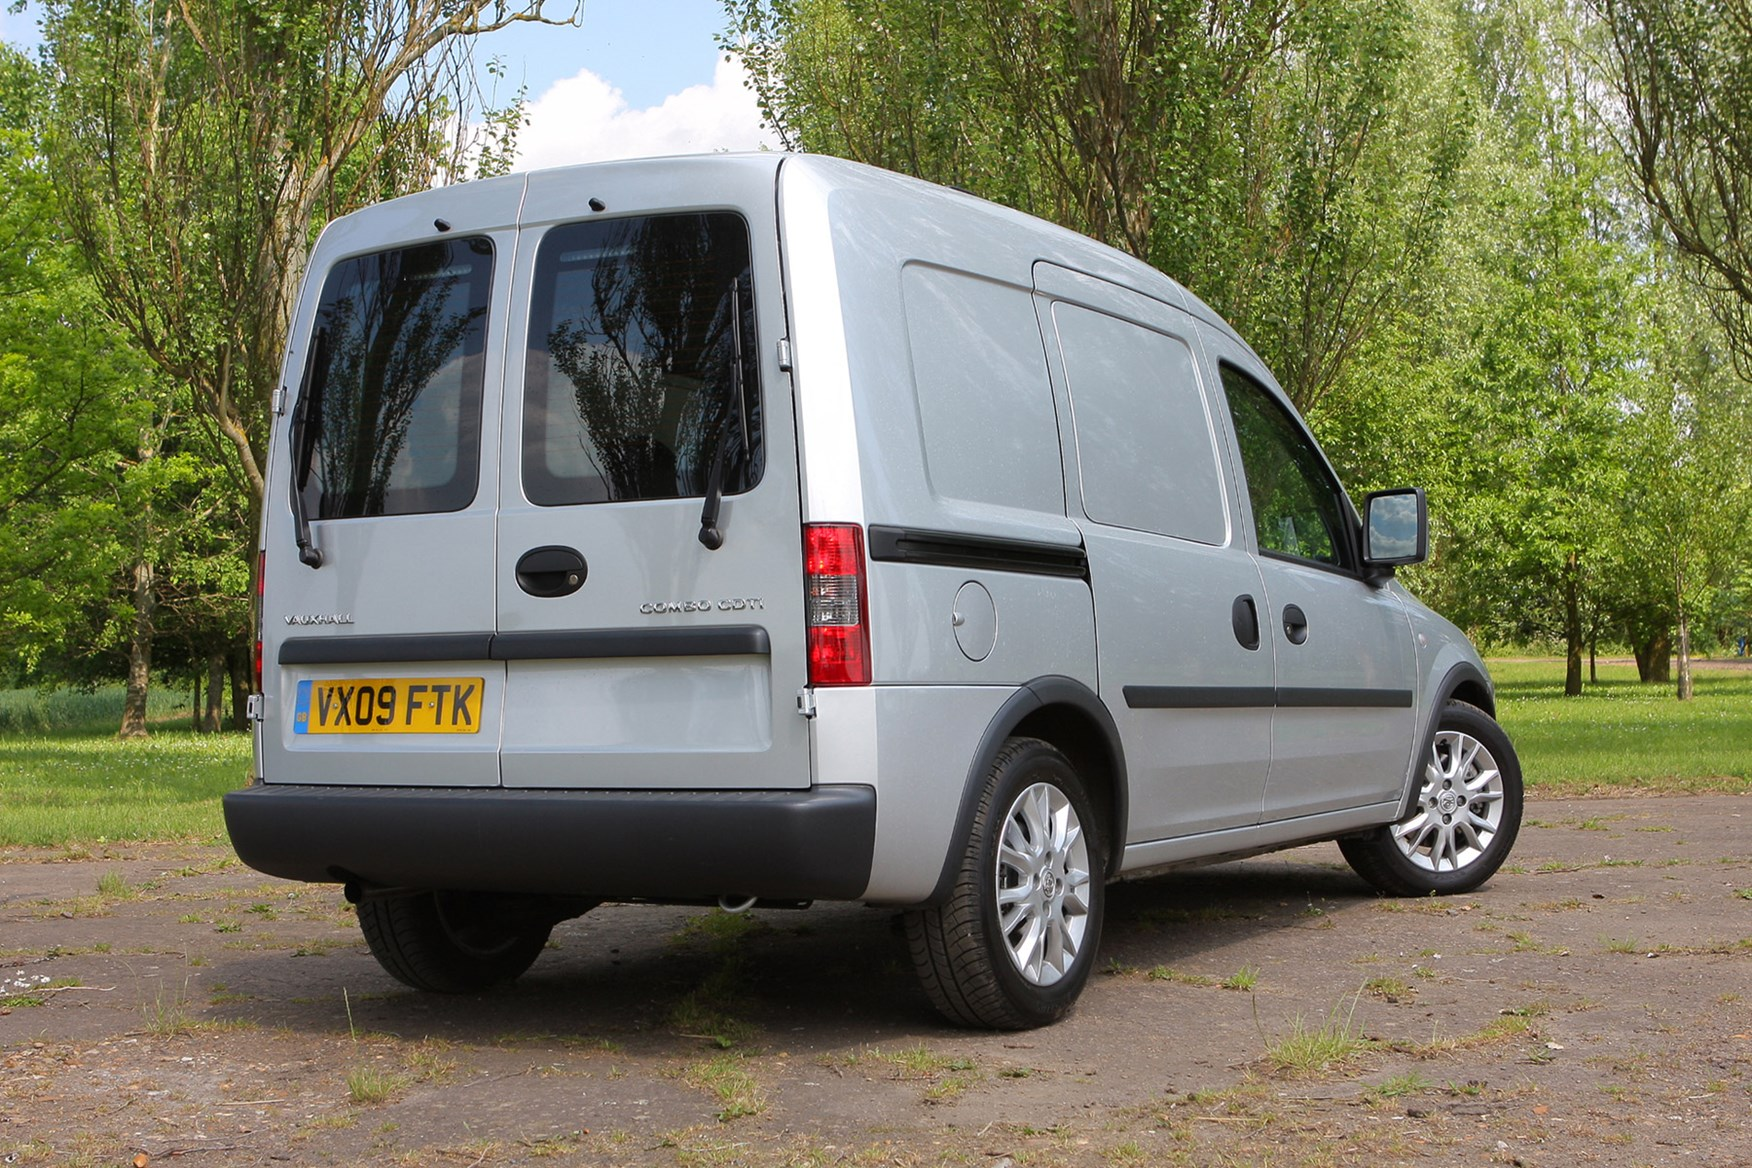 Vauxhall Combo review on Parkers Vans - rear